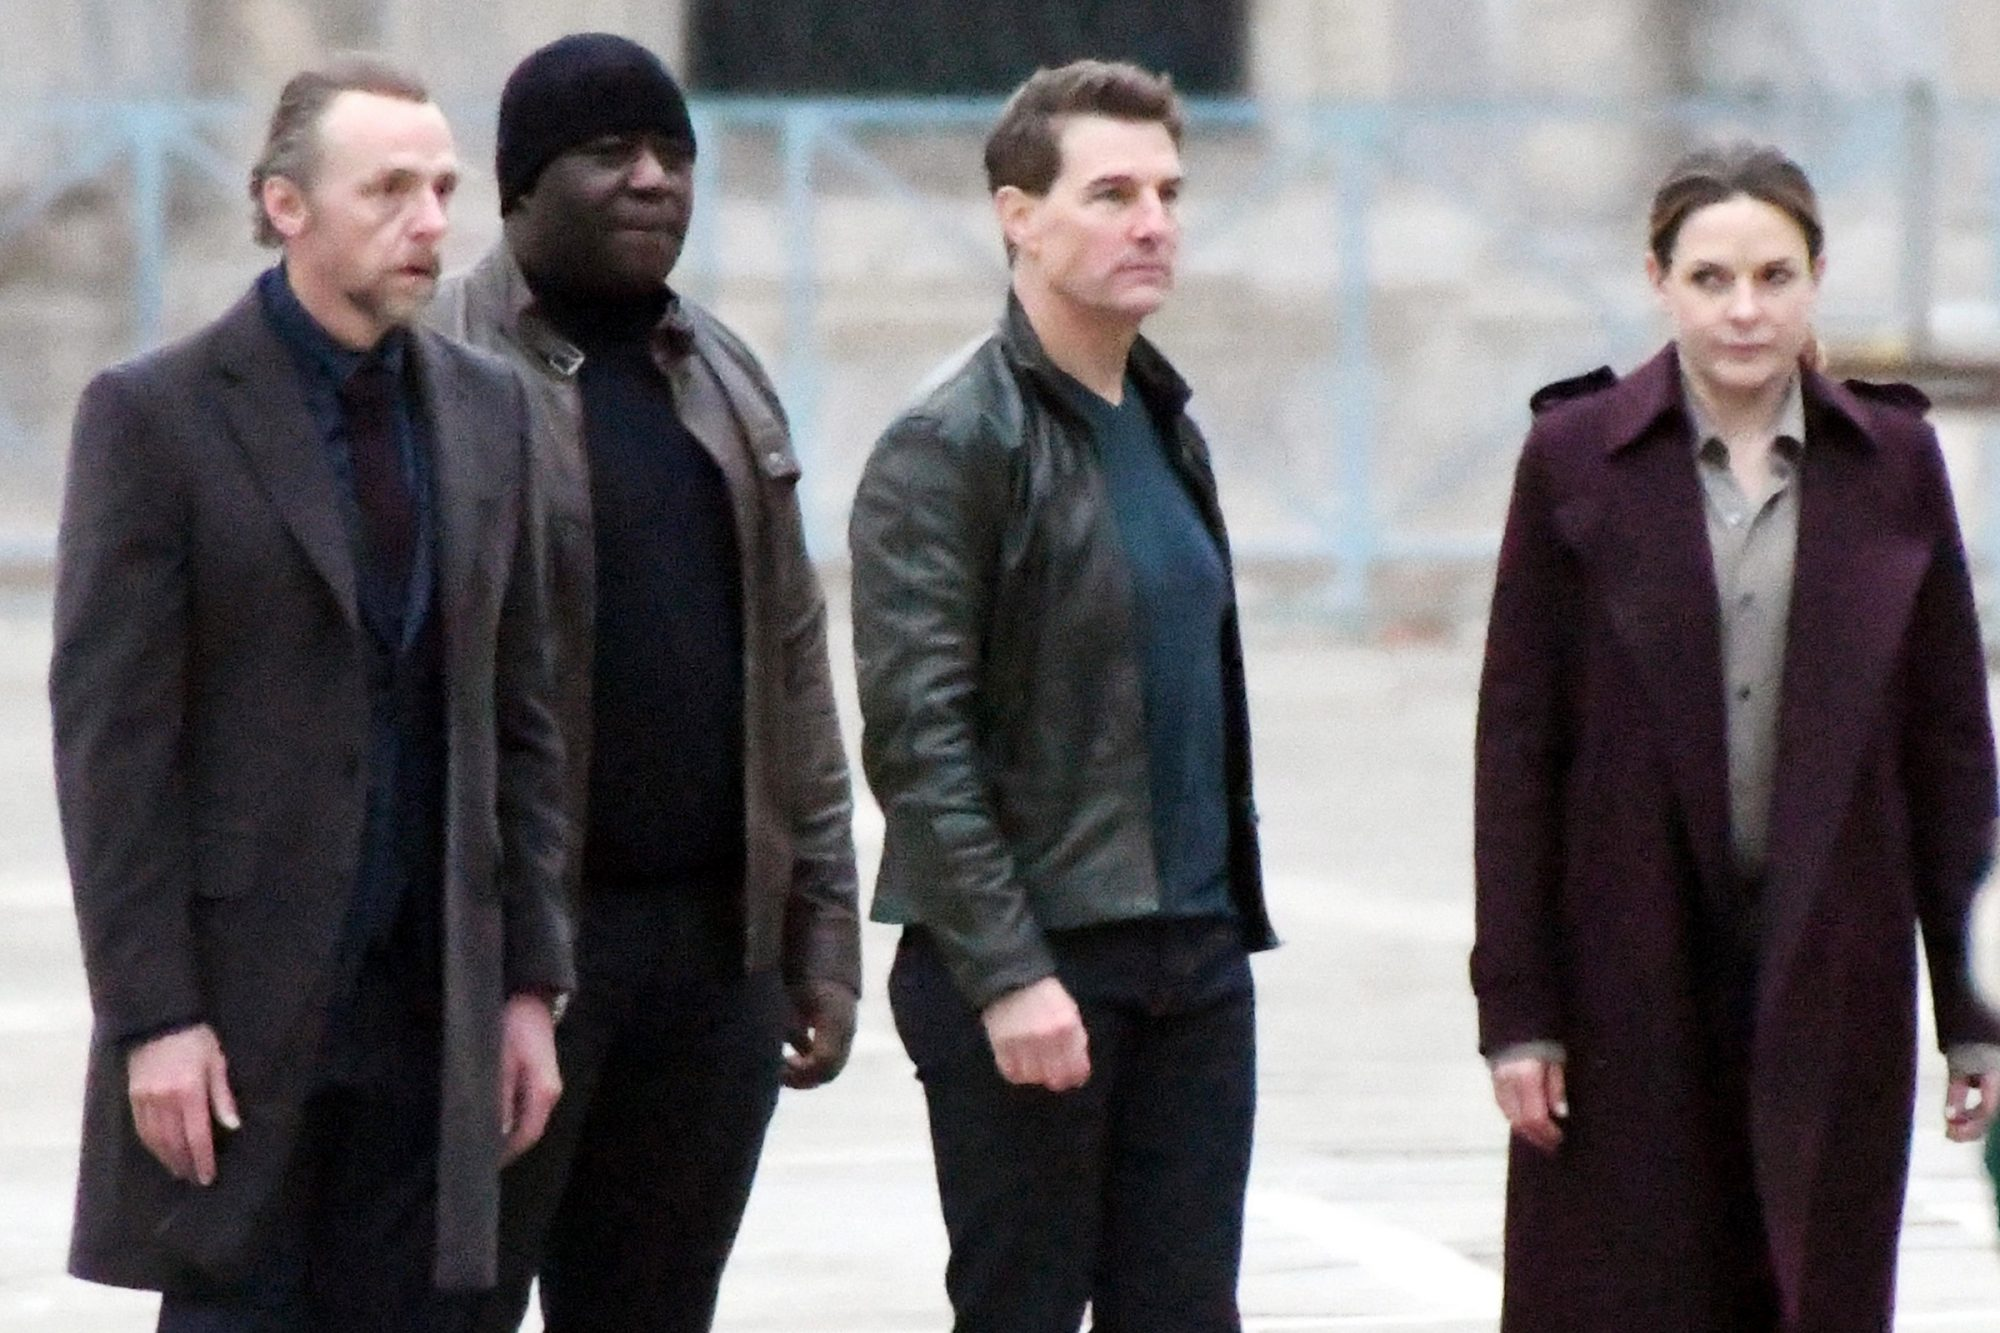 Tom Cruise, Rebecca Ferguson and Simon Pegg film Mission Impossible 7 at St Mark's Square in Venice